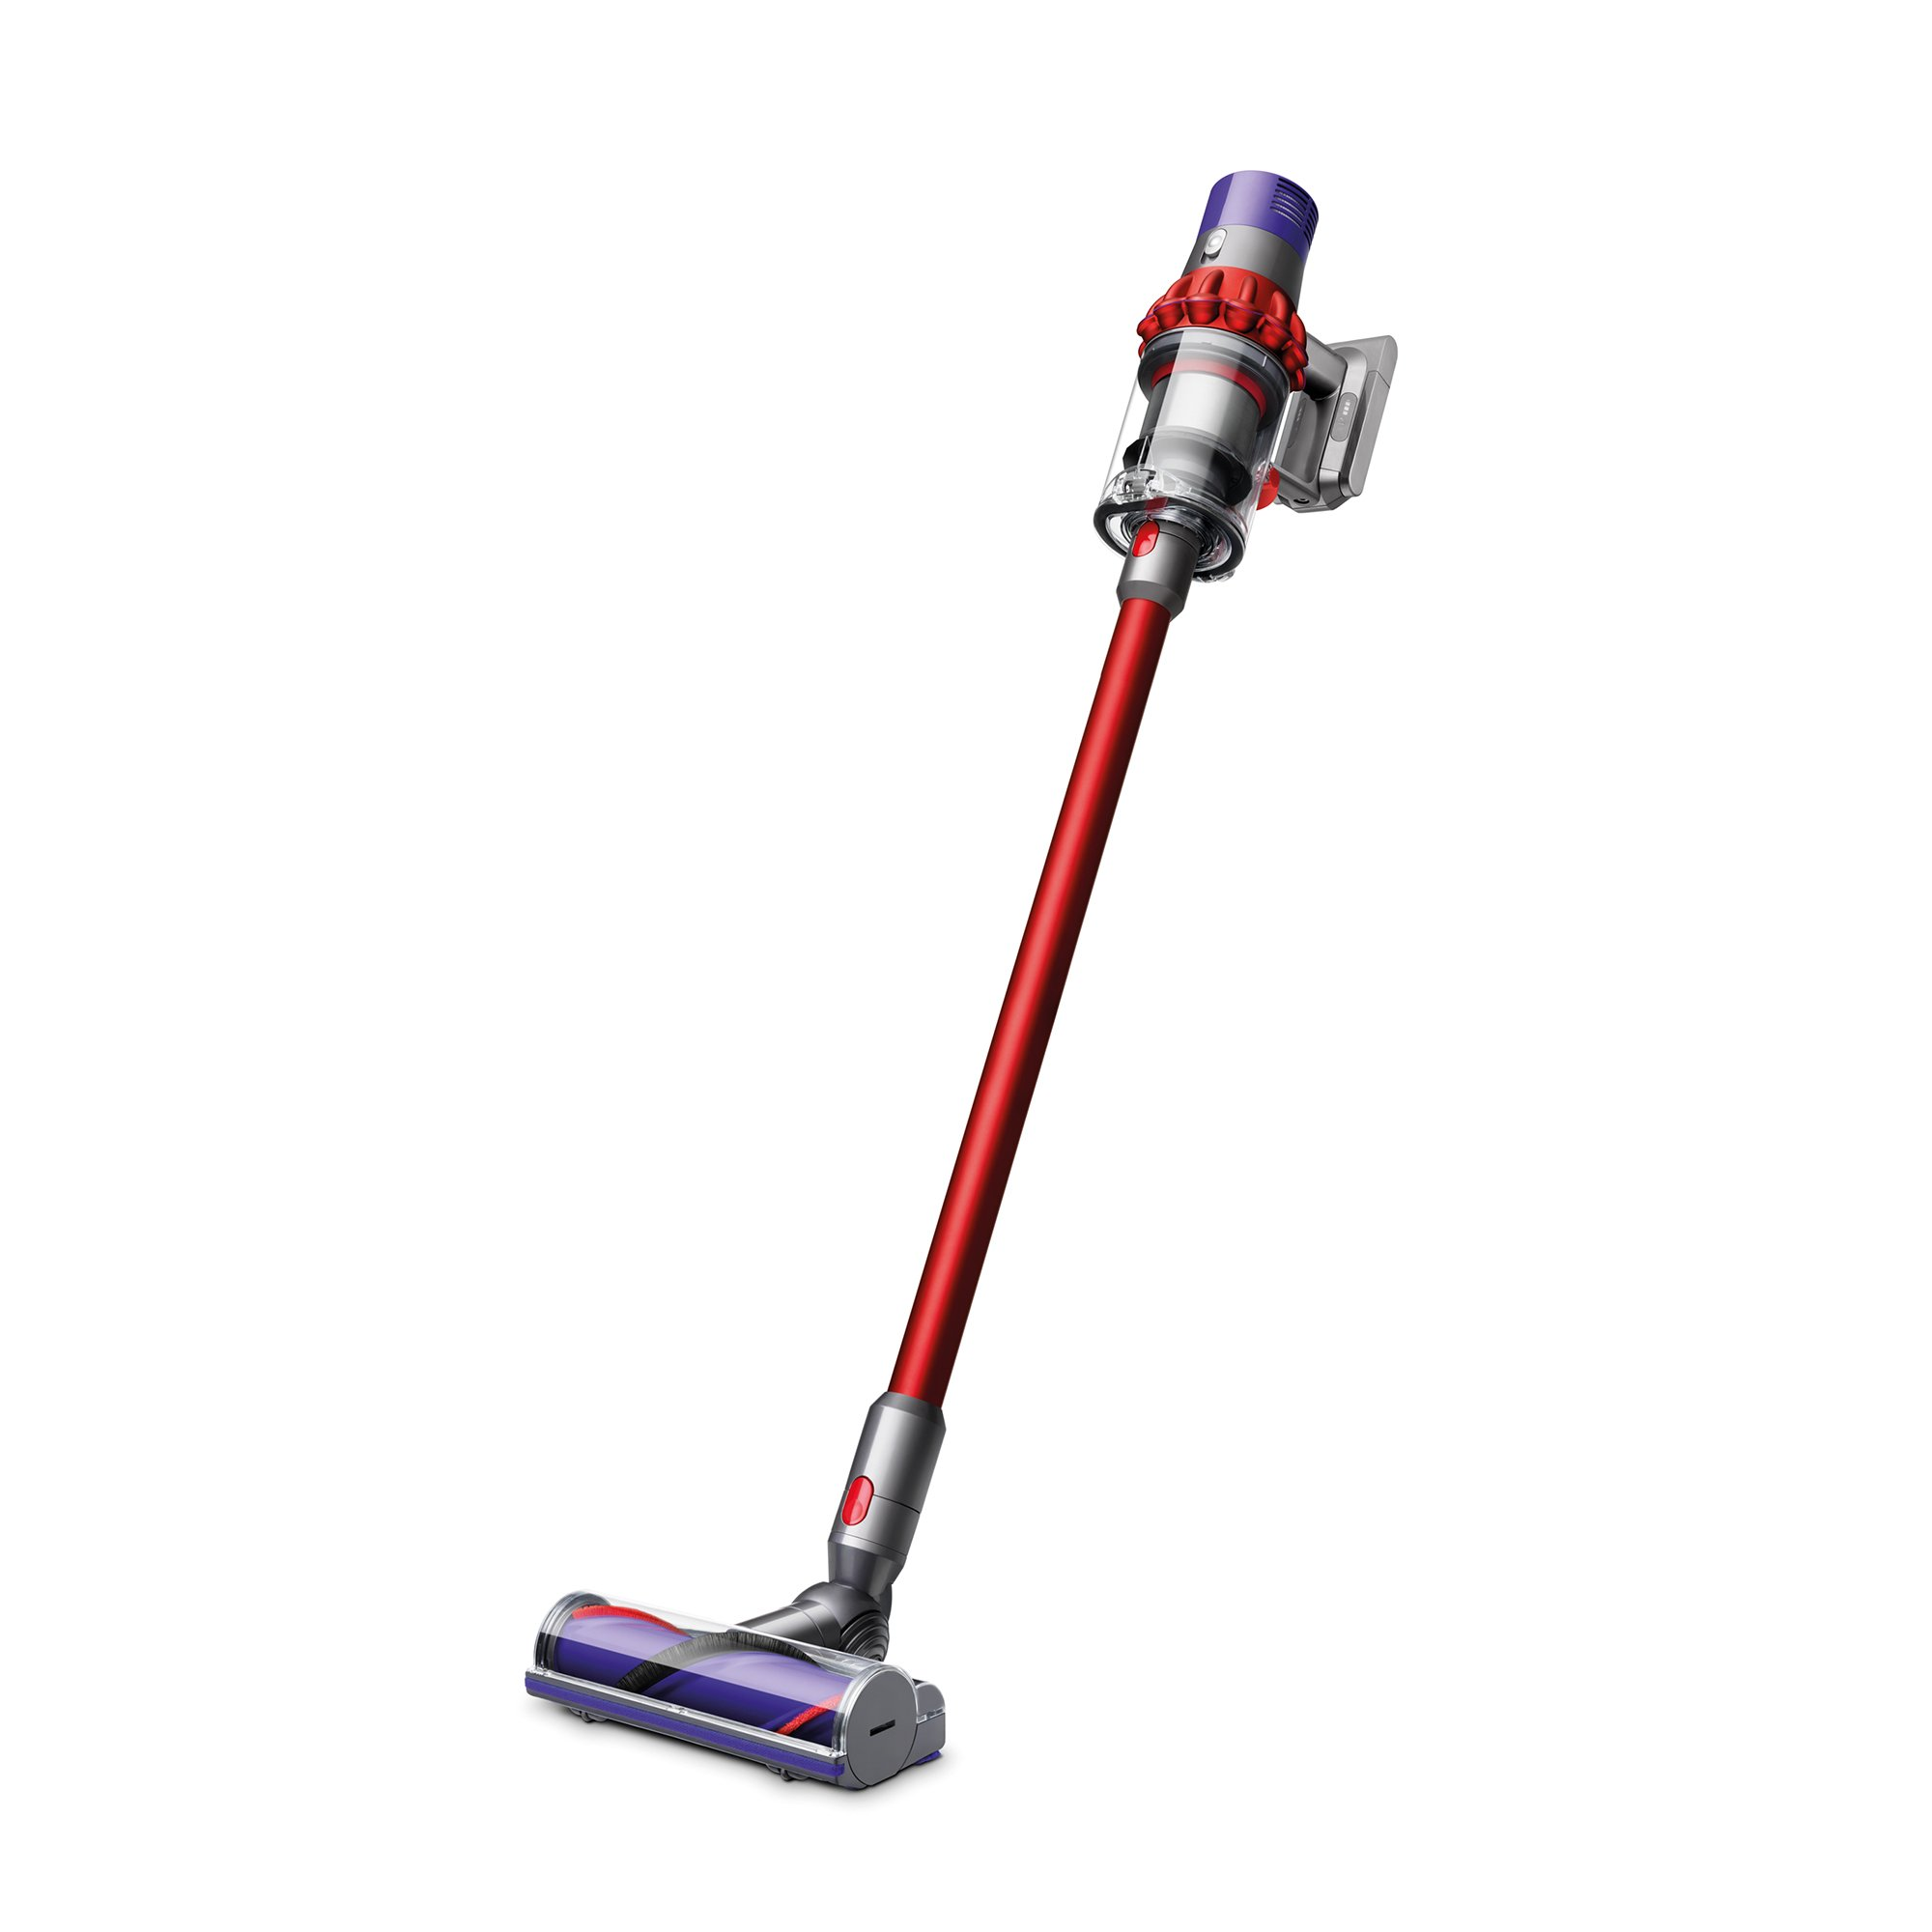 Dyson Cyclone V10 Motorhead Lightweight Cordless Stick Vacuum Cleaner by Dyson